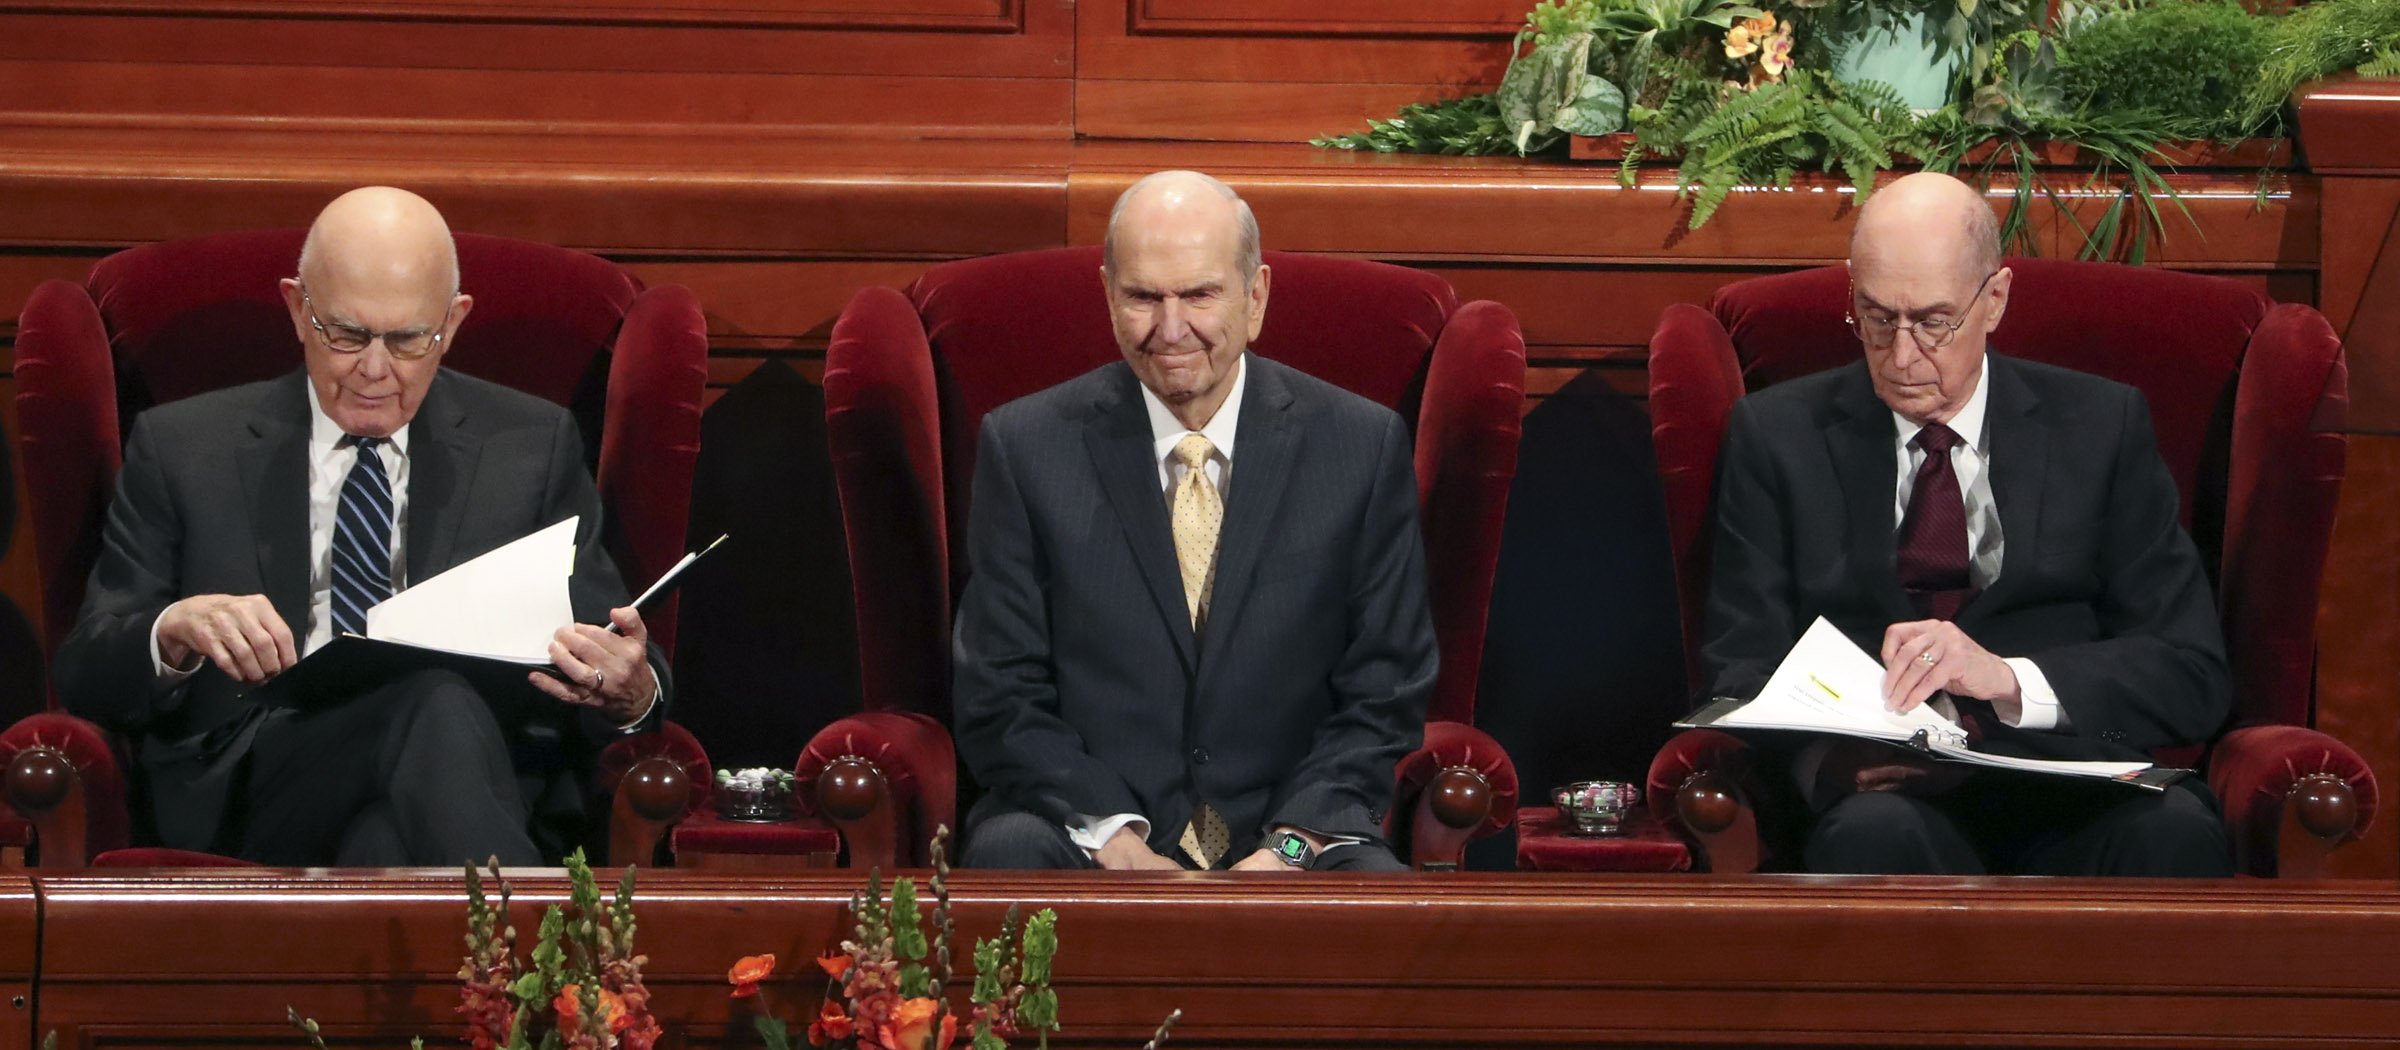 President Russell M. Nelson of The Church of Jesus Christ of Latter-day Saints, center, smiles at attendees as he sits with his counselors, President Dallin H. Oaks, first counselor in the First Presidency, left, and President Henry B. Eyring, second counselor in the First Presidency, right, at the Conference Center in Salt Lake City during the afternoon session of 189th Annual General Conference on Saturday, April 6, 2019.